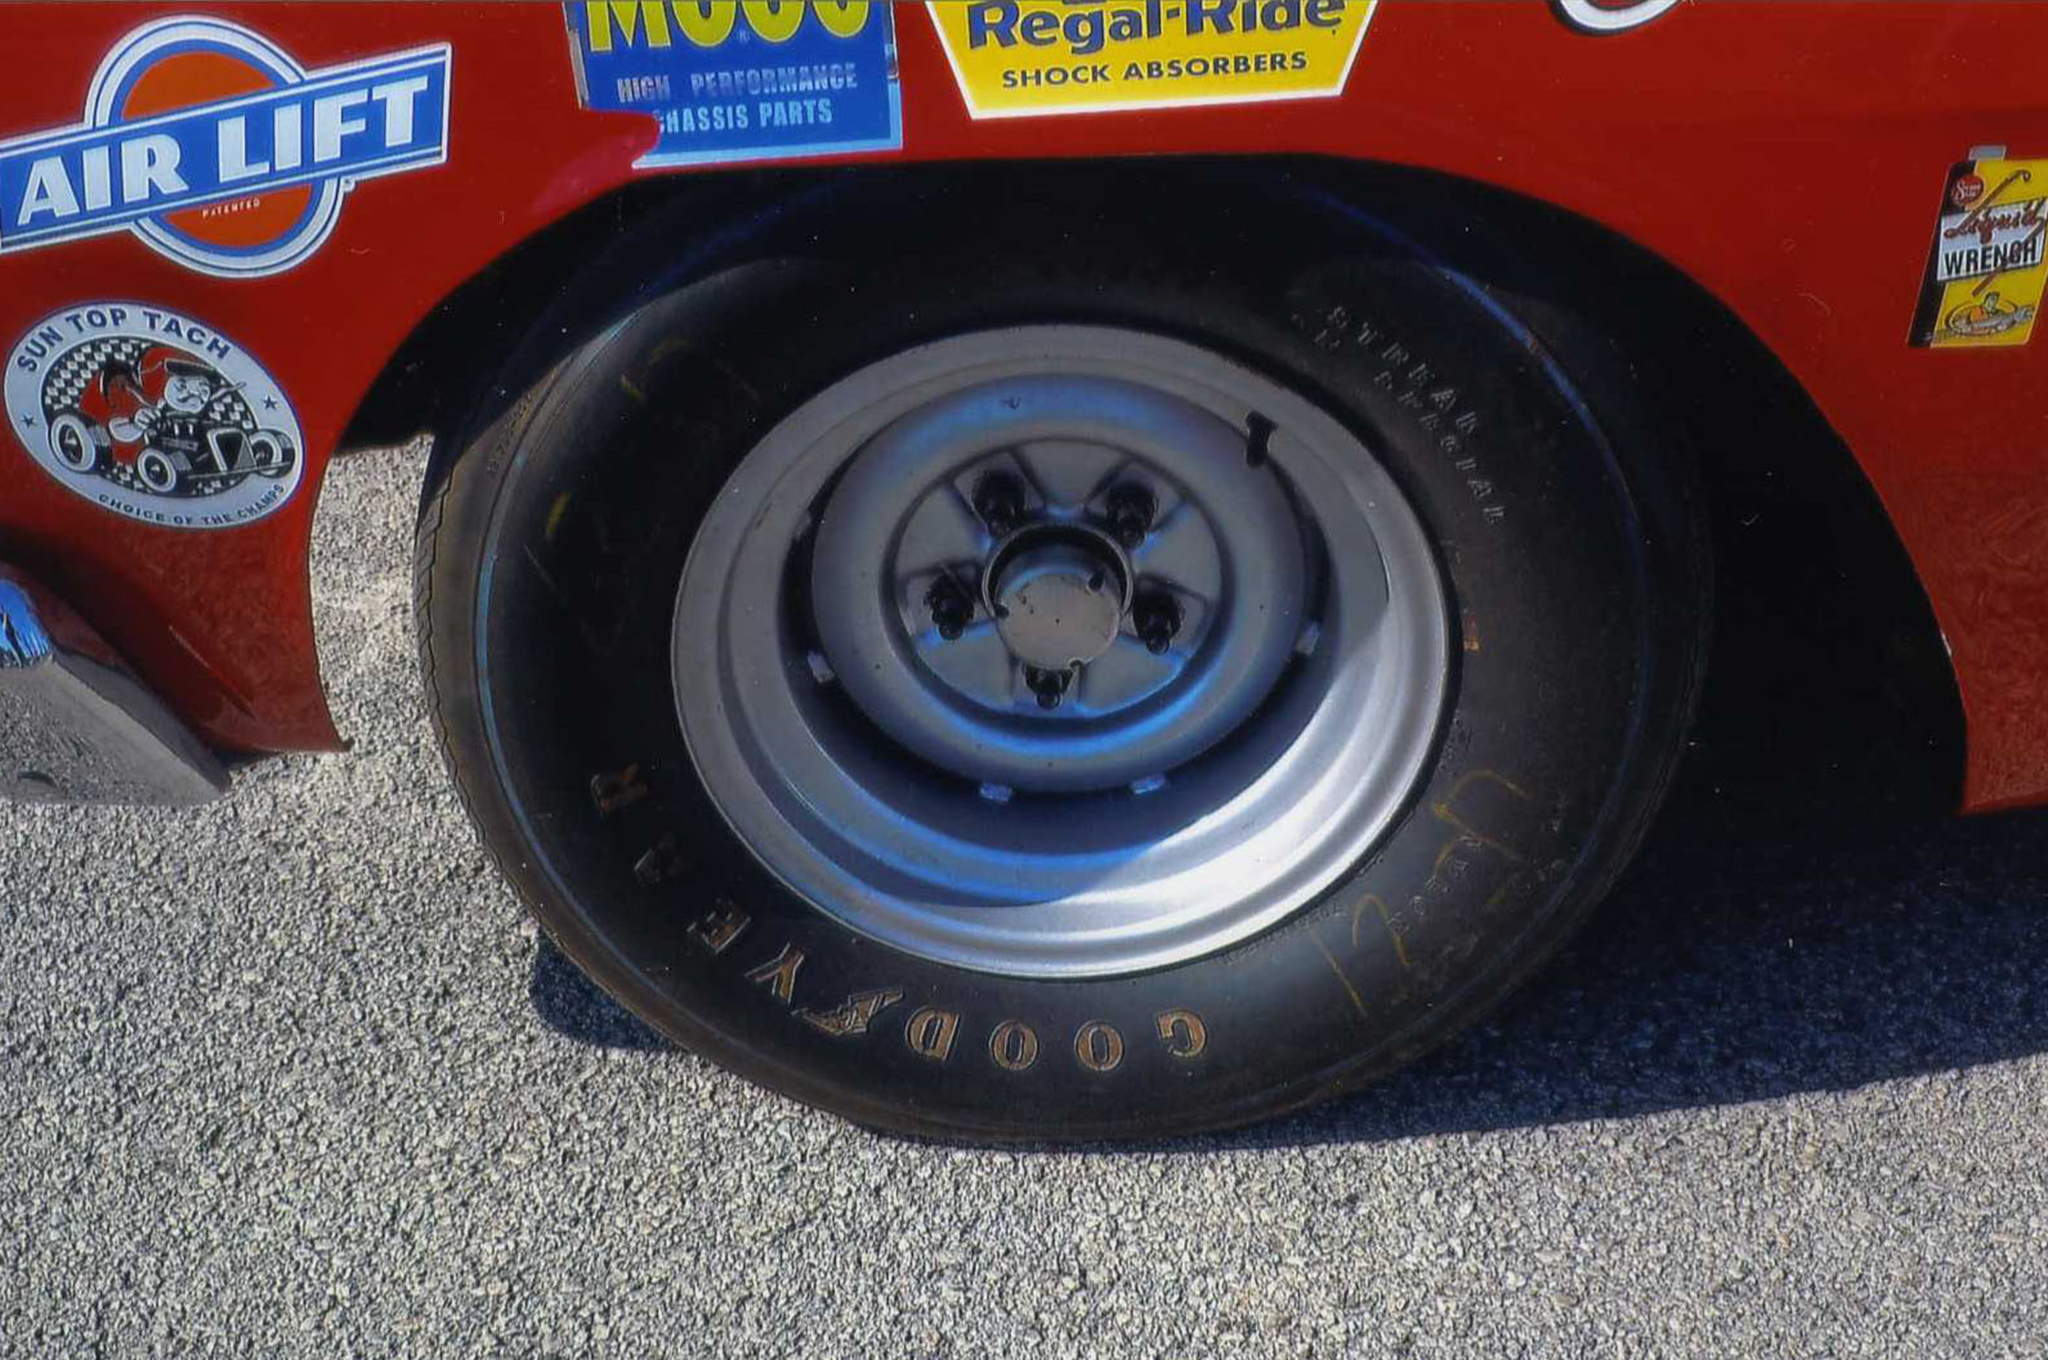 Holman and Moody 8.5-inch wheels support Goodyear racing tires.